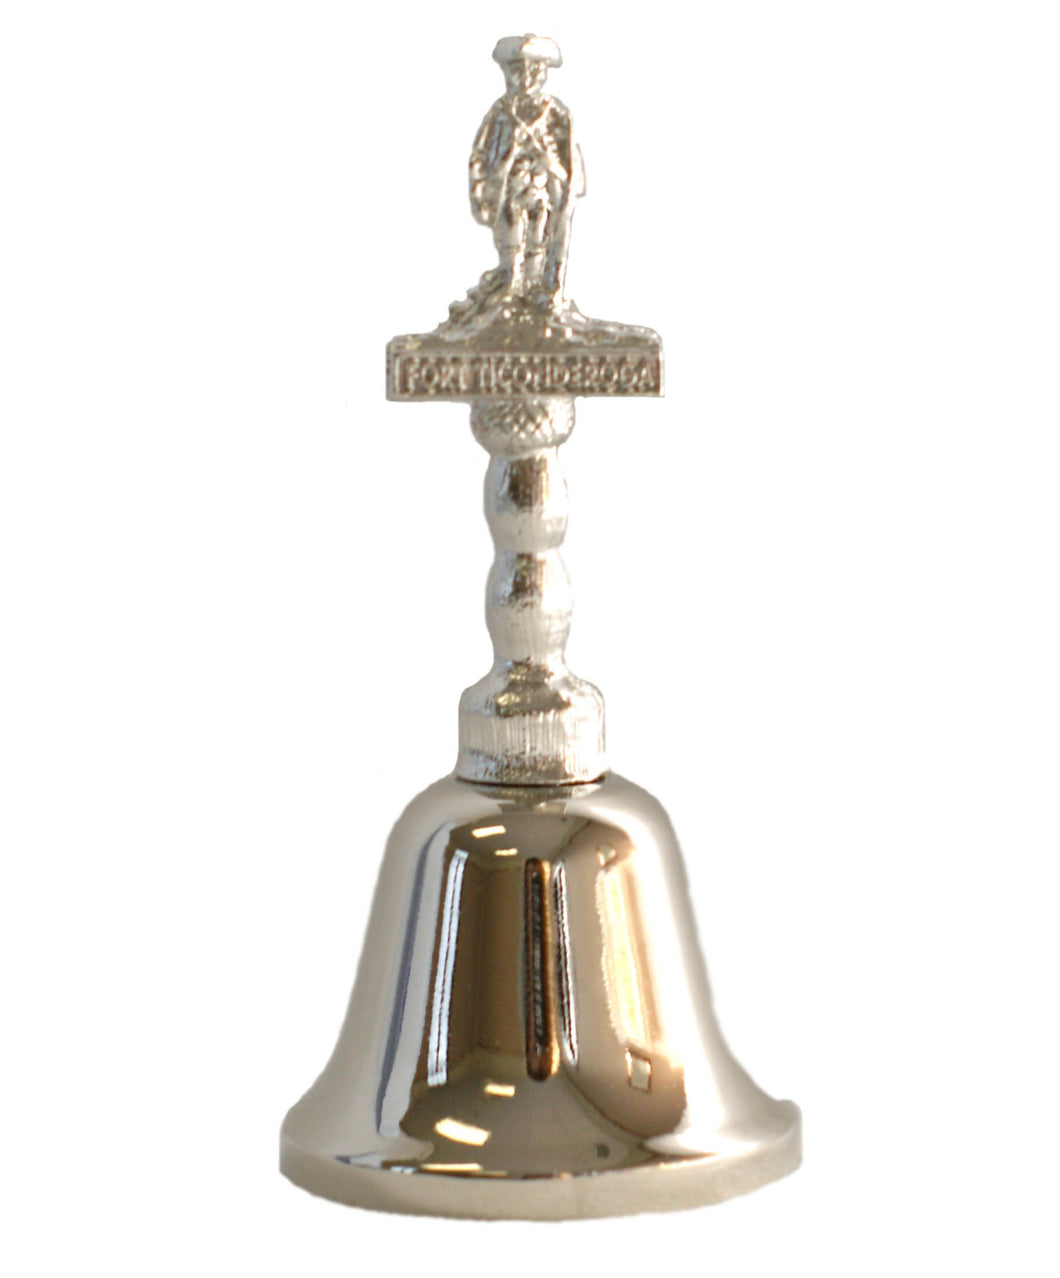 silver bell with small solider on top on white background